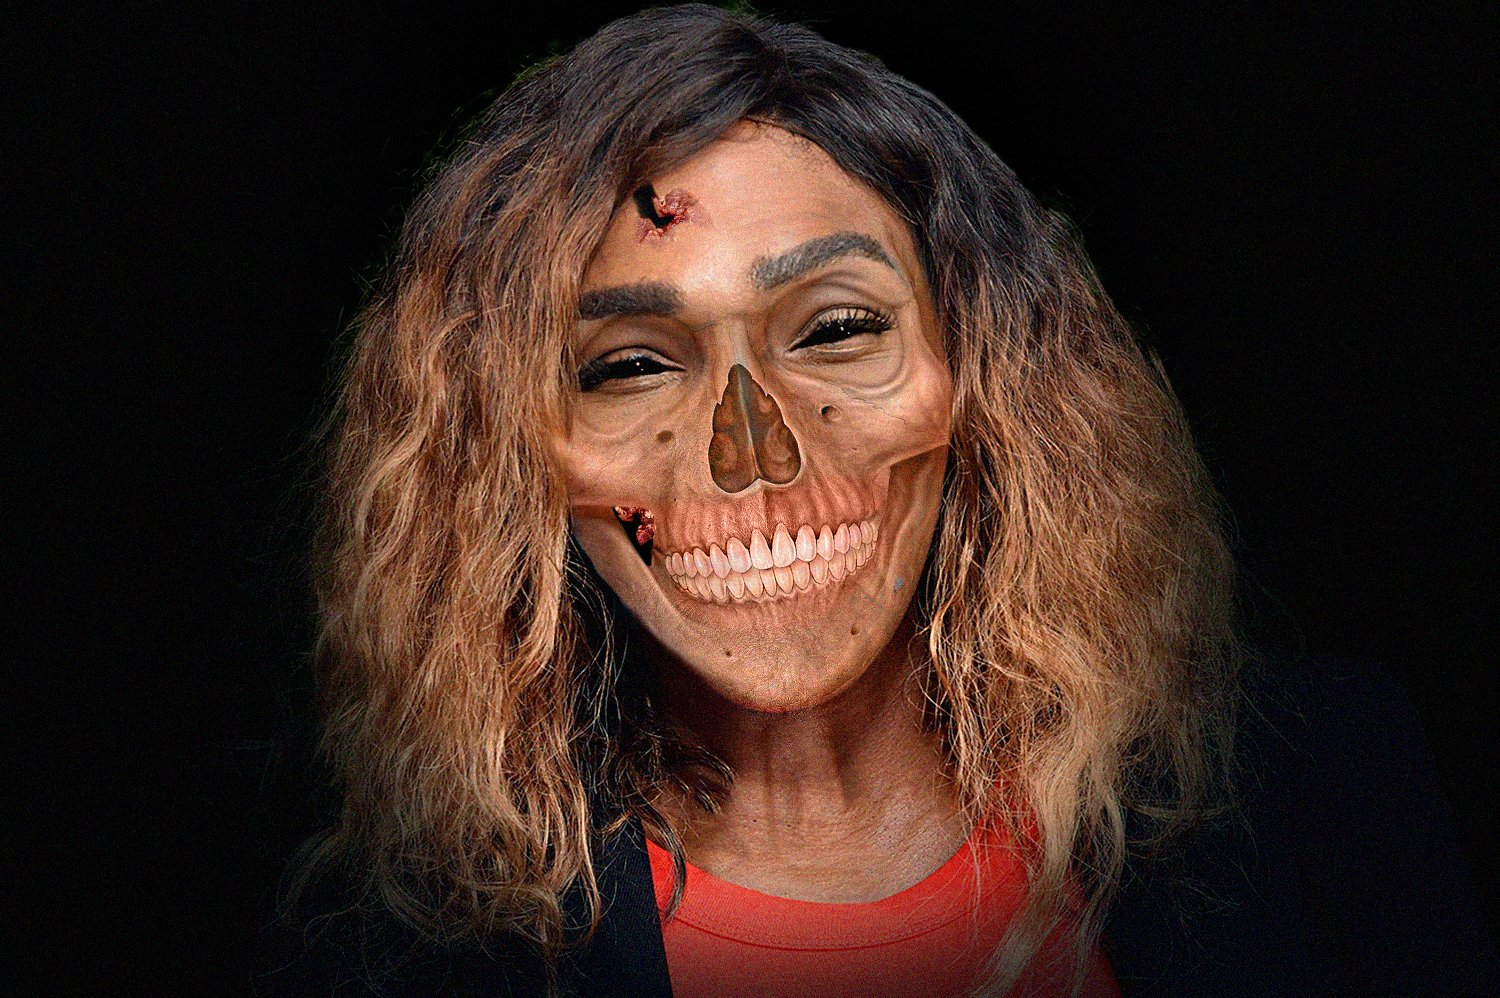 Serena Williams as a zombie | Source: Getty Images